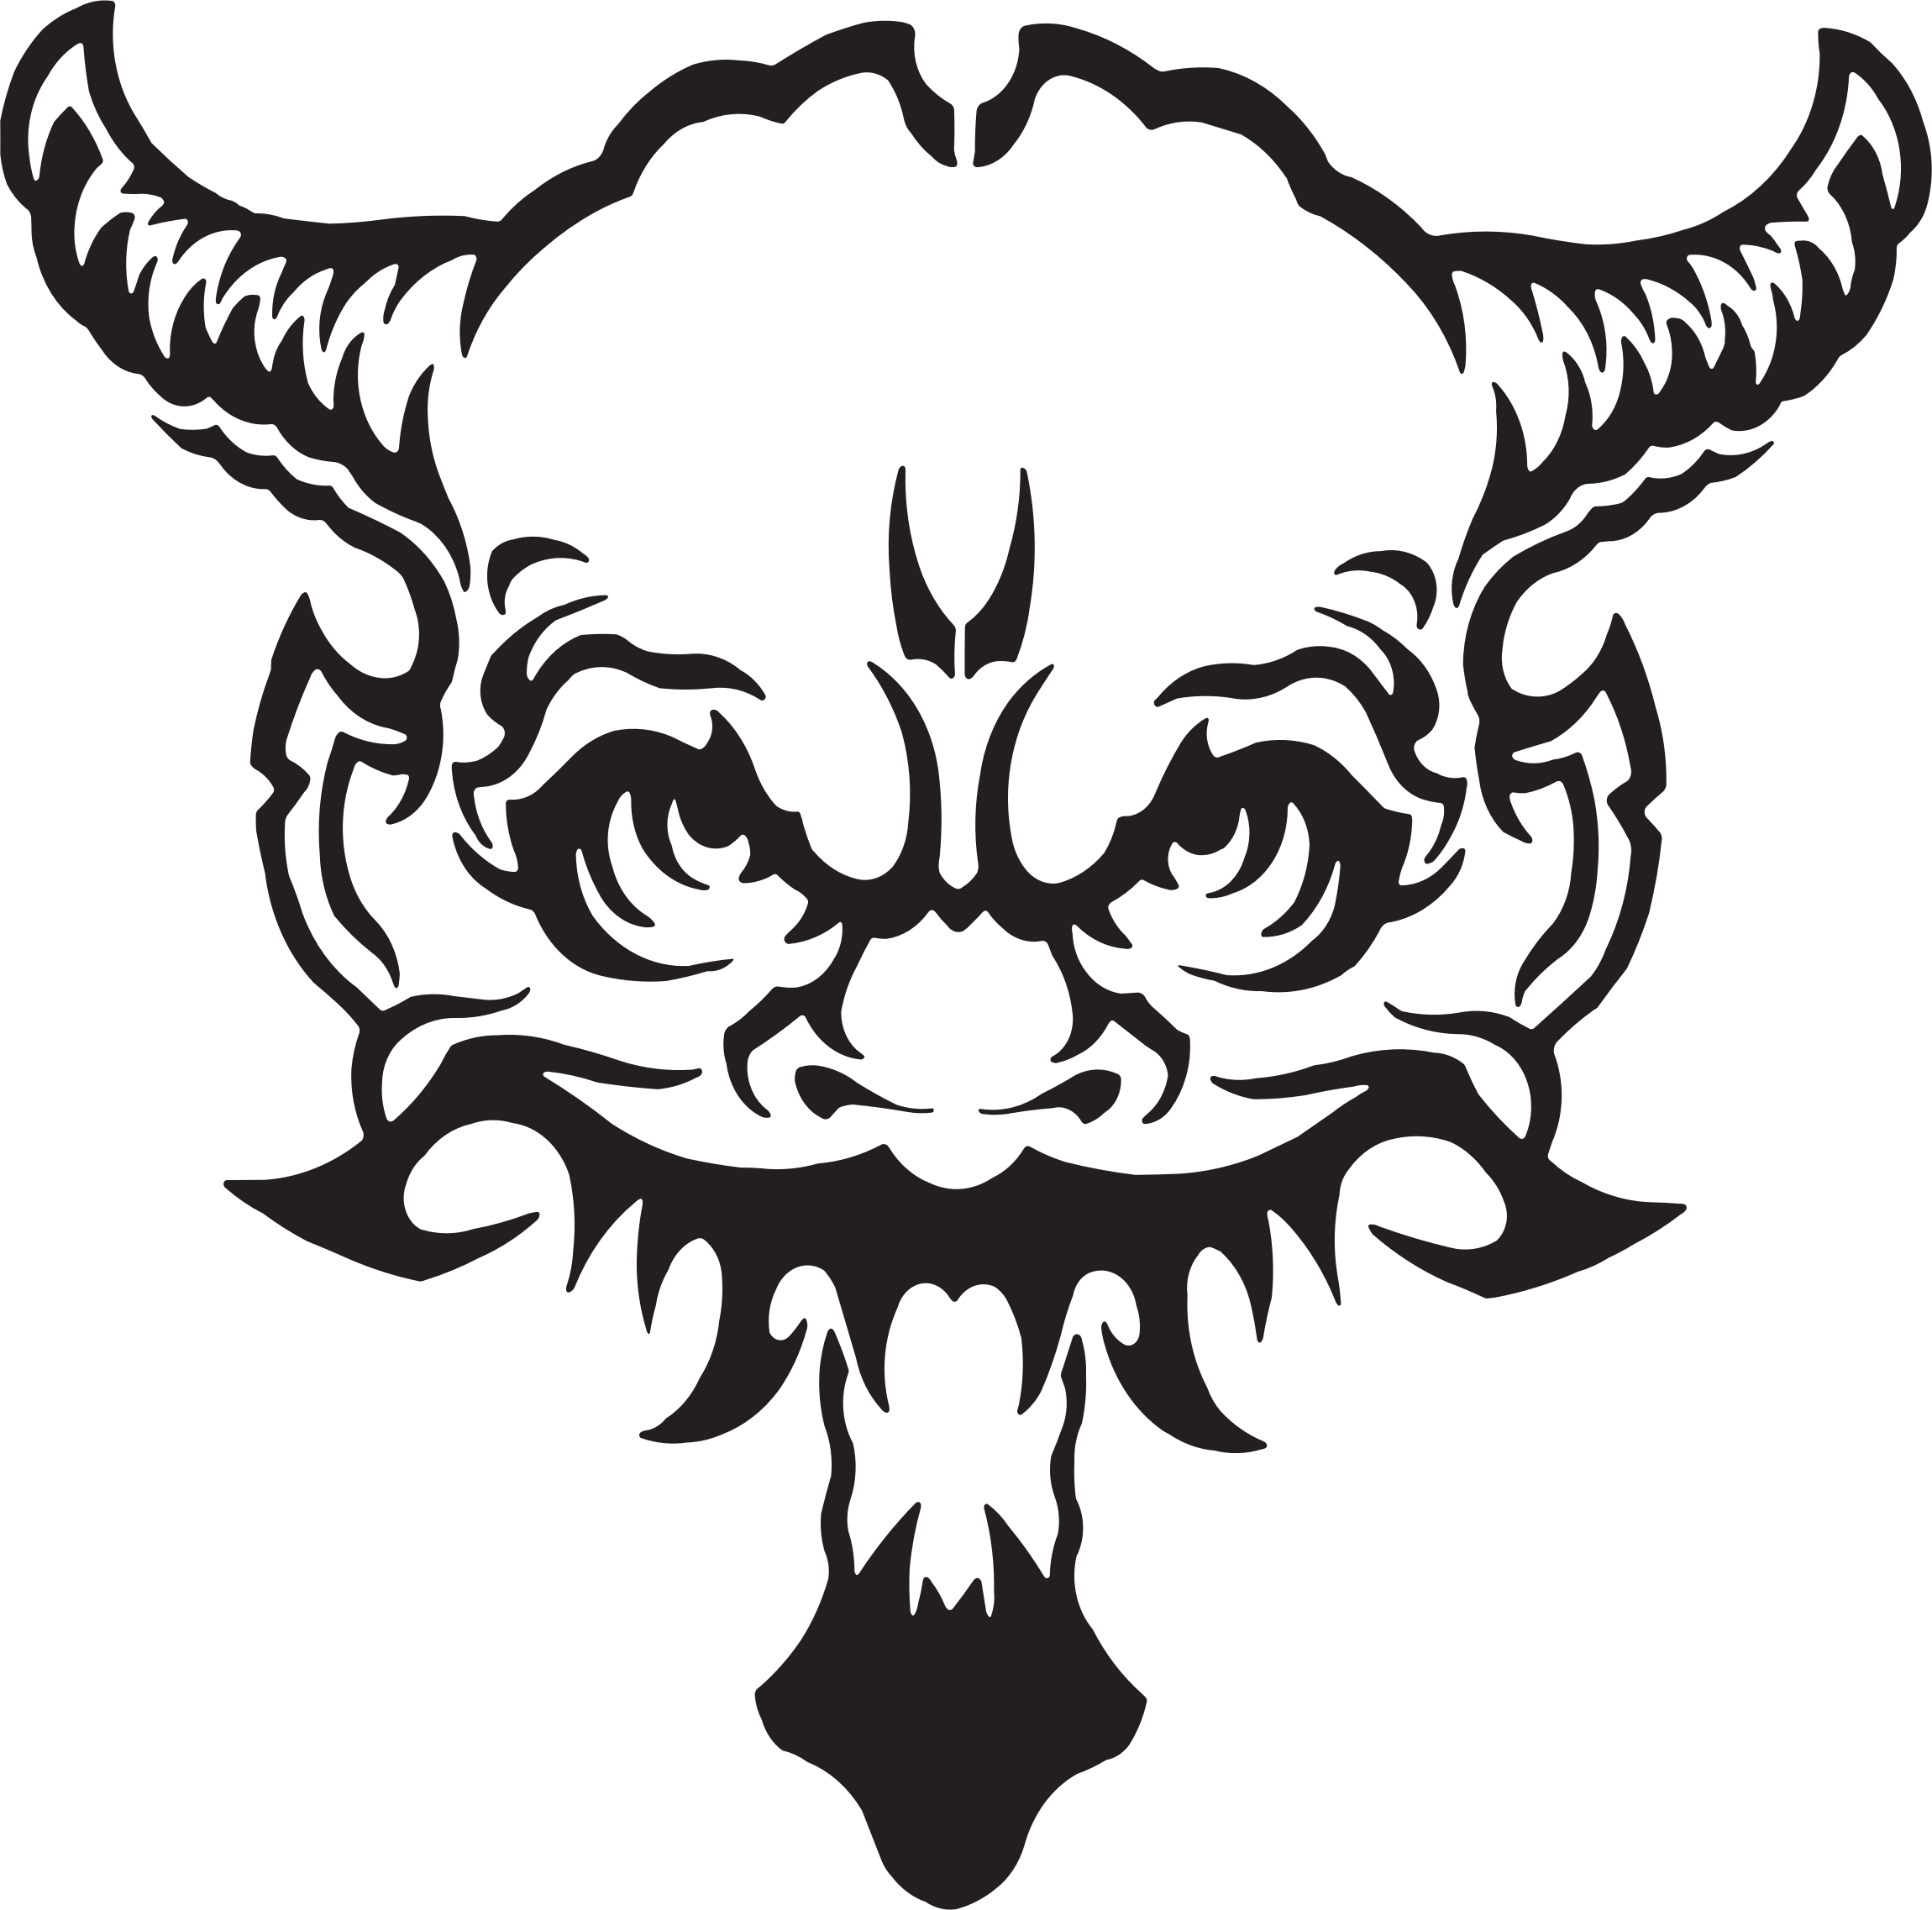 Demon with crown clipart vector free stock Demon Clipart crown - Free Clipart on Dumielauxepices.net vector free stock